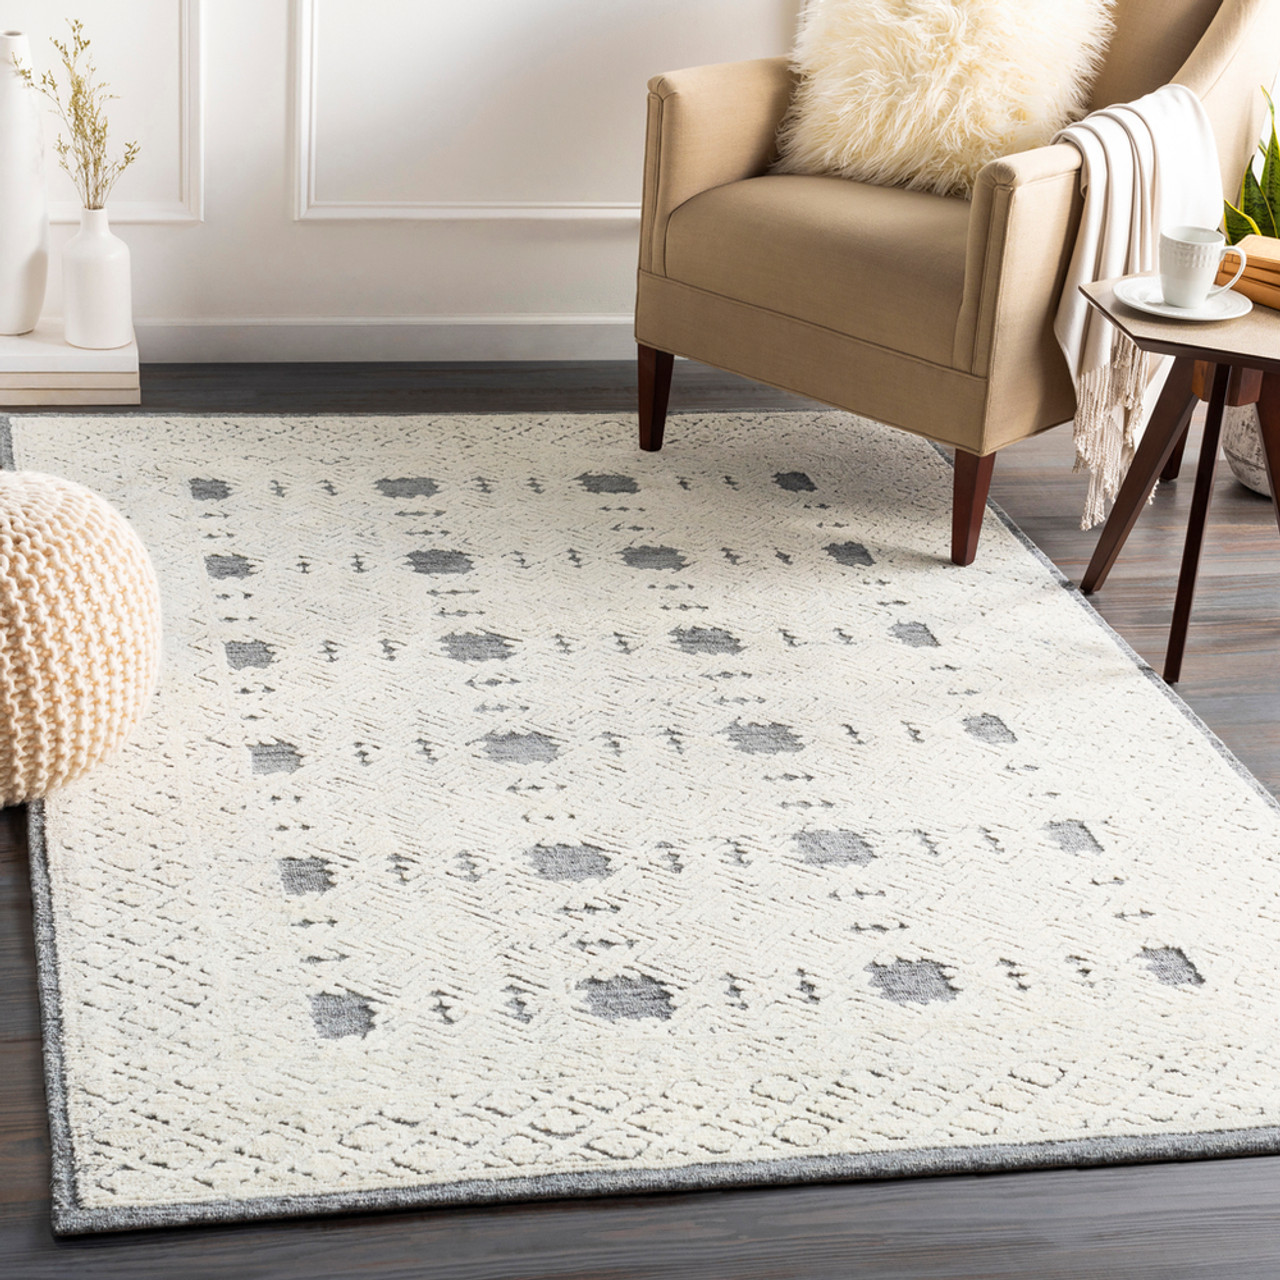 4 X 6 Distressed Geometric Pattern White And Gray Rectangular Area Rug 33439800